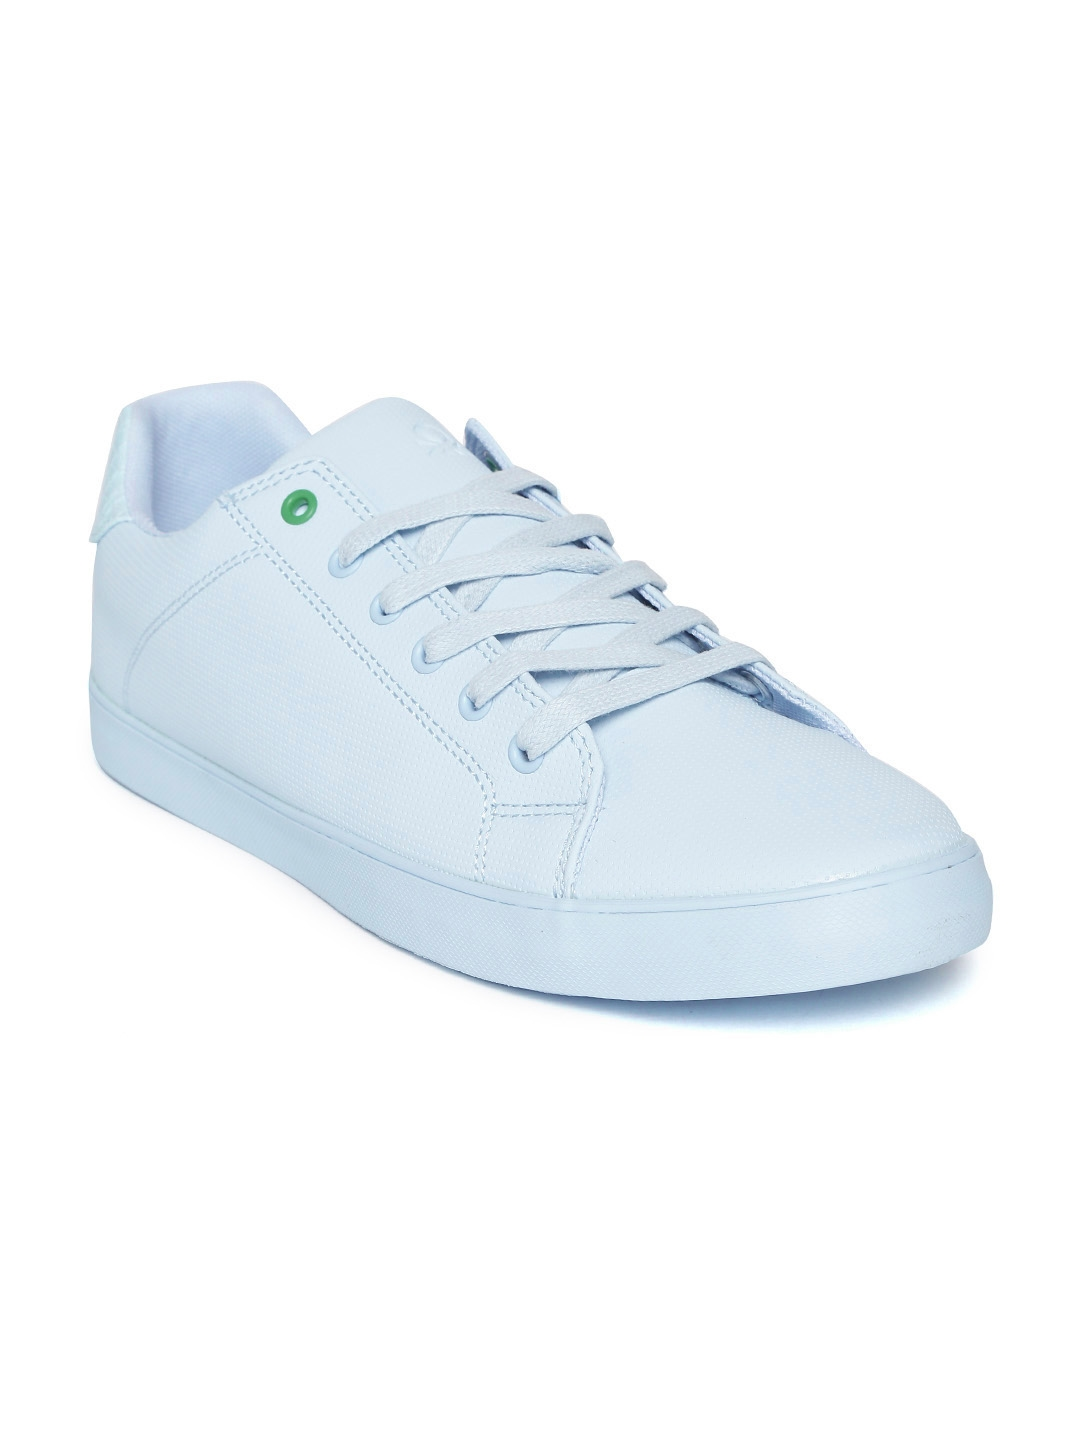 Blue Textured Sneakers - Casual Shoes